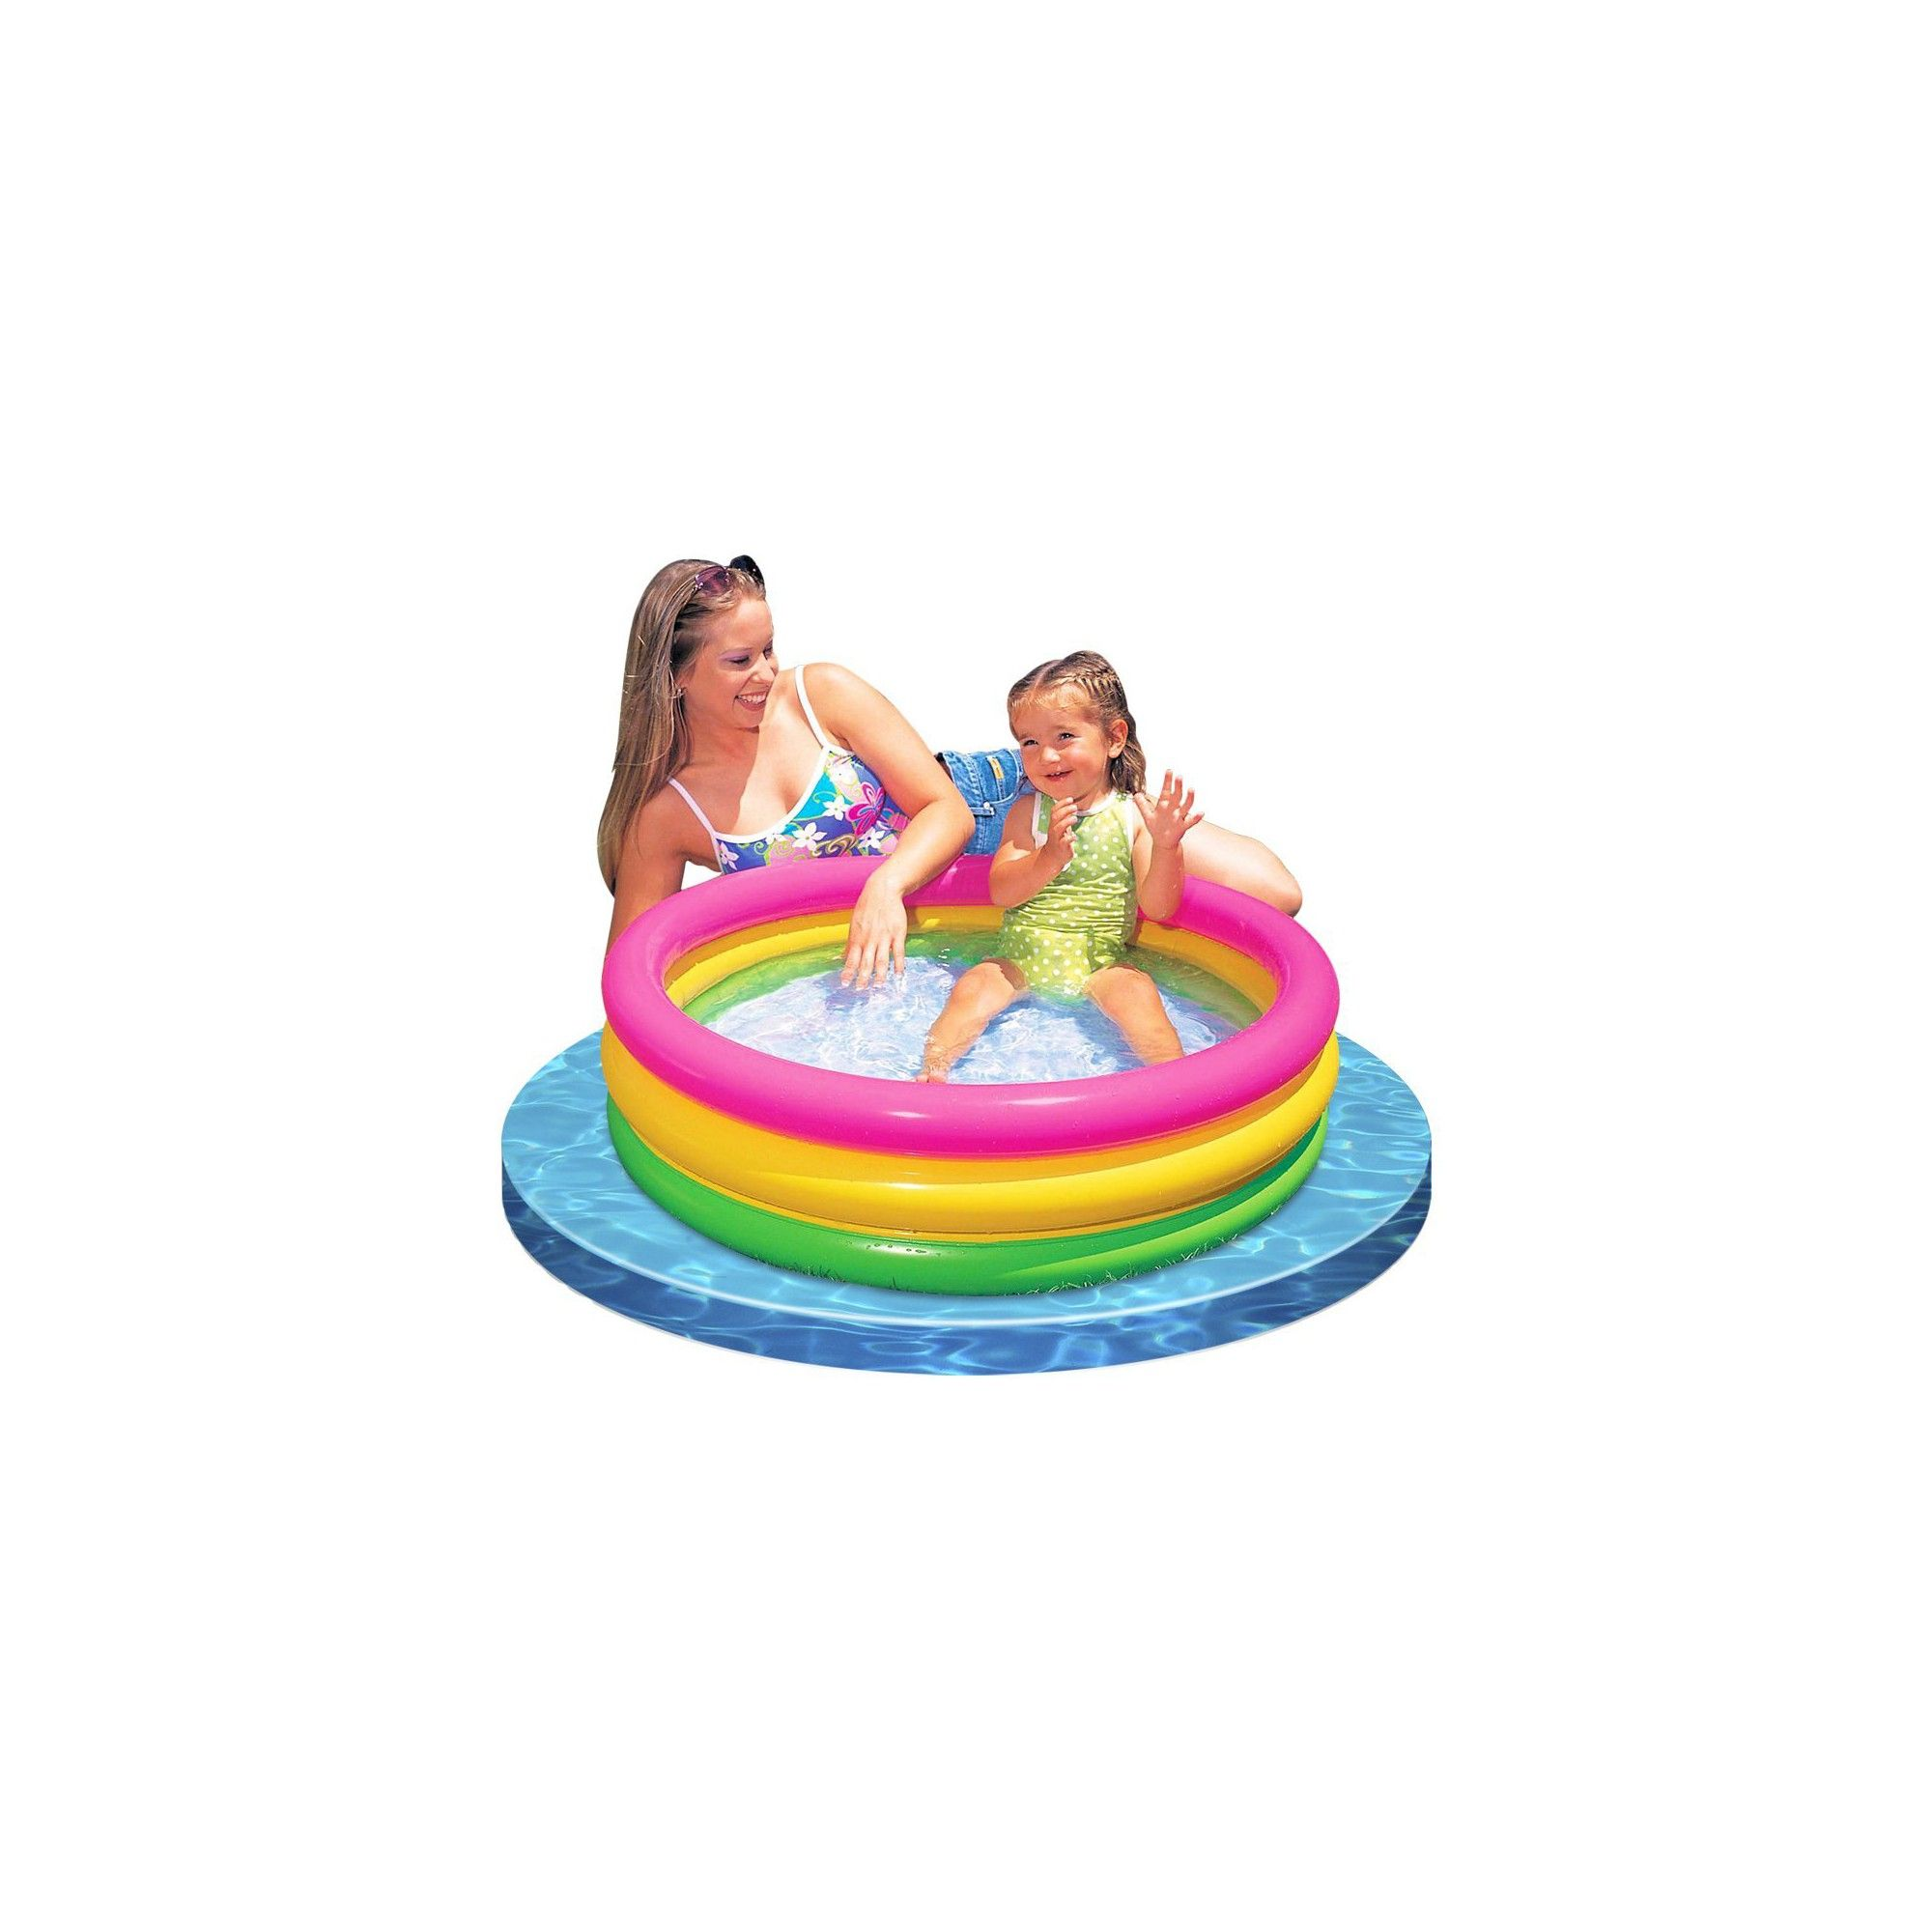 2) Intex Sunset Glow Inflatable Colorful Baby Swimming